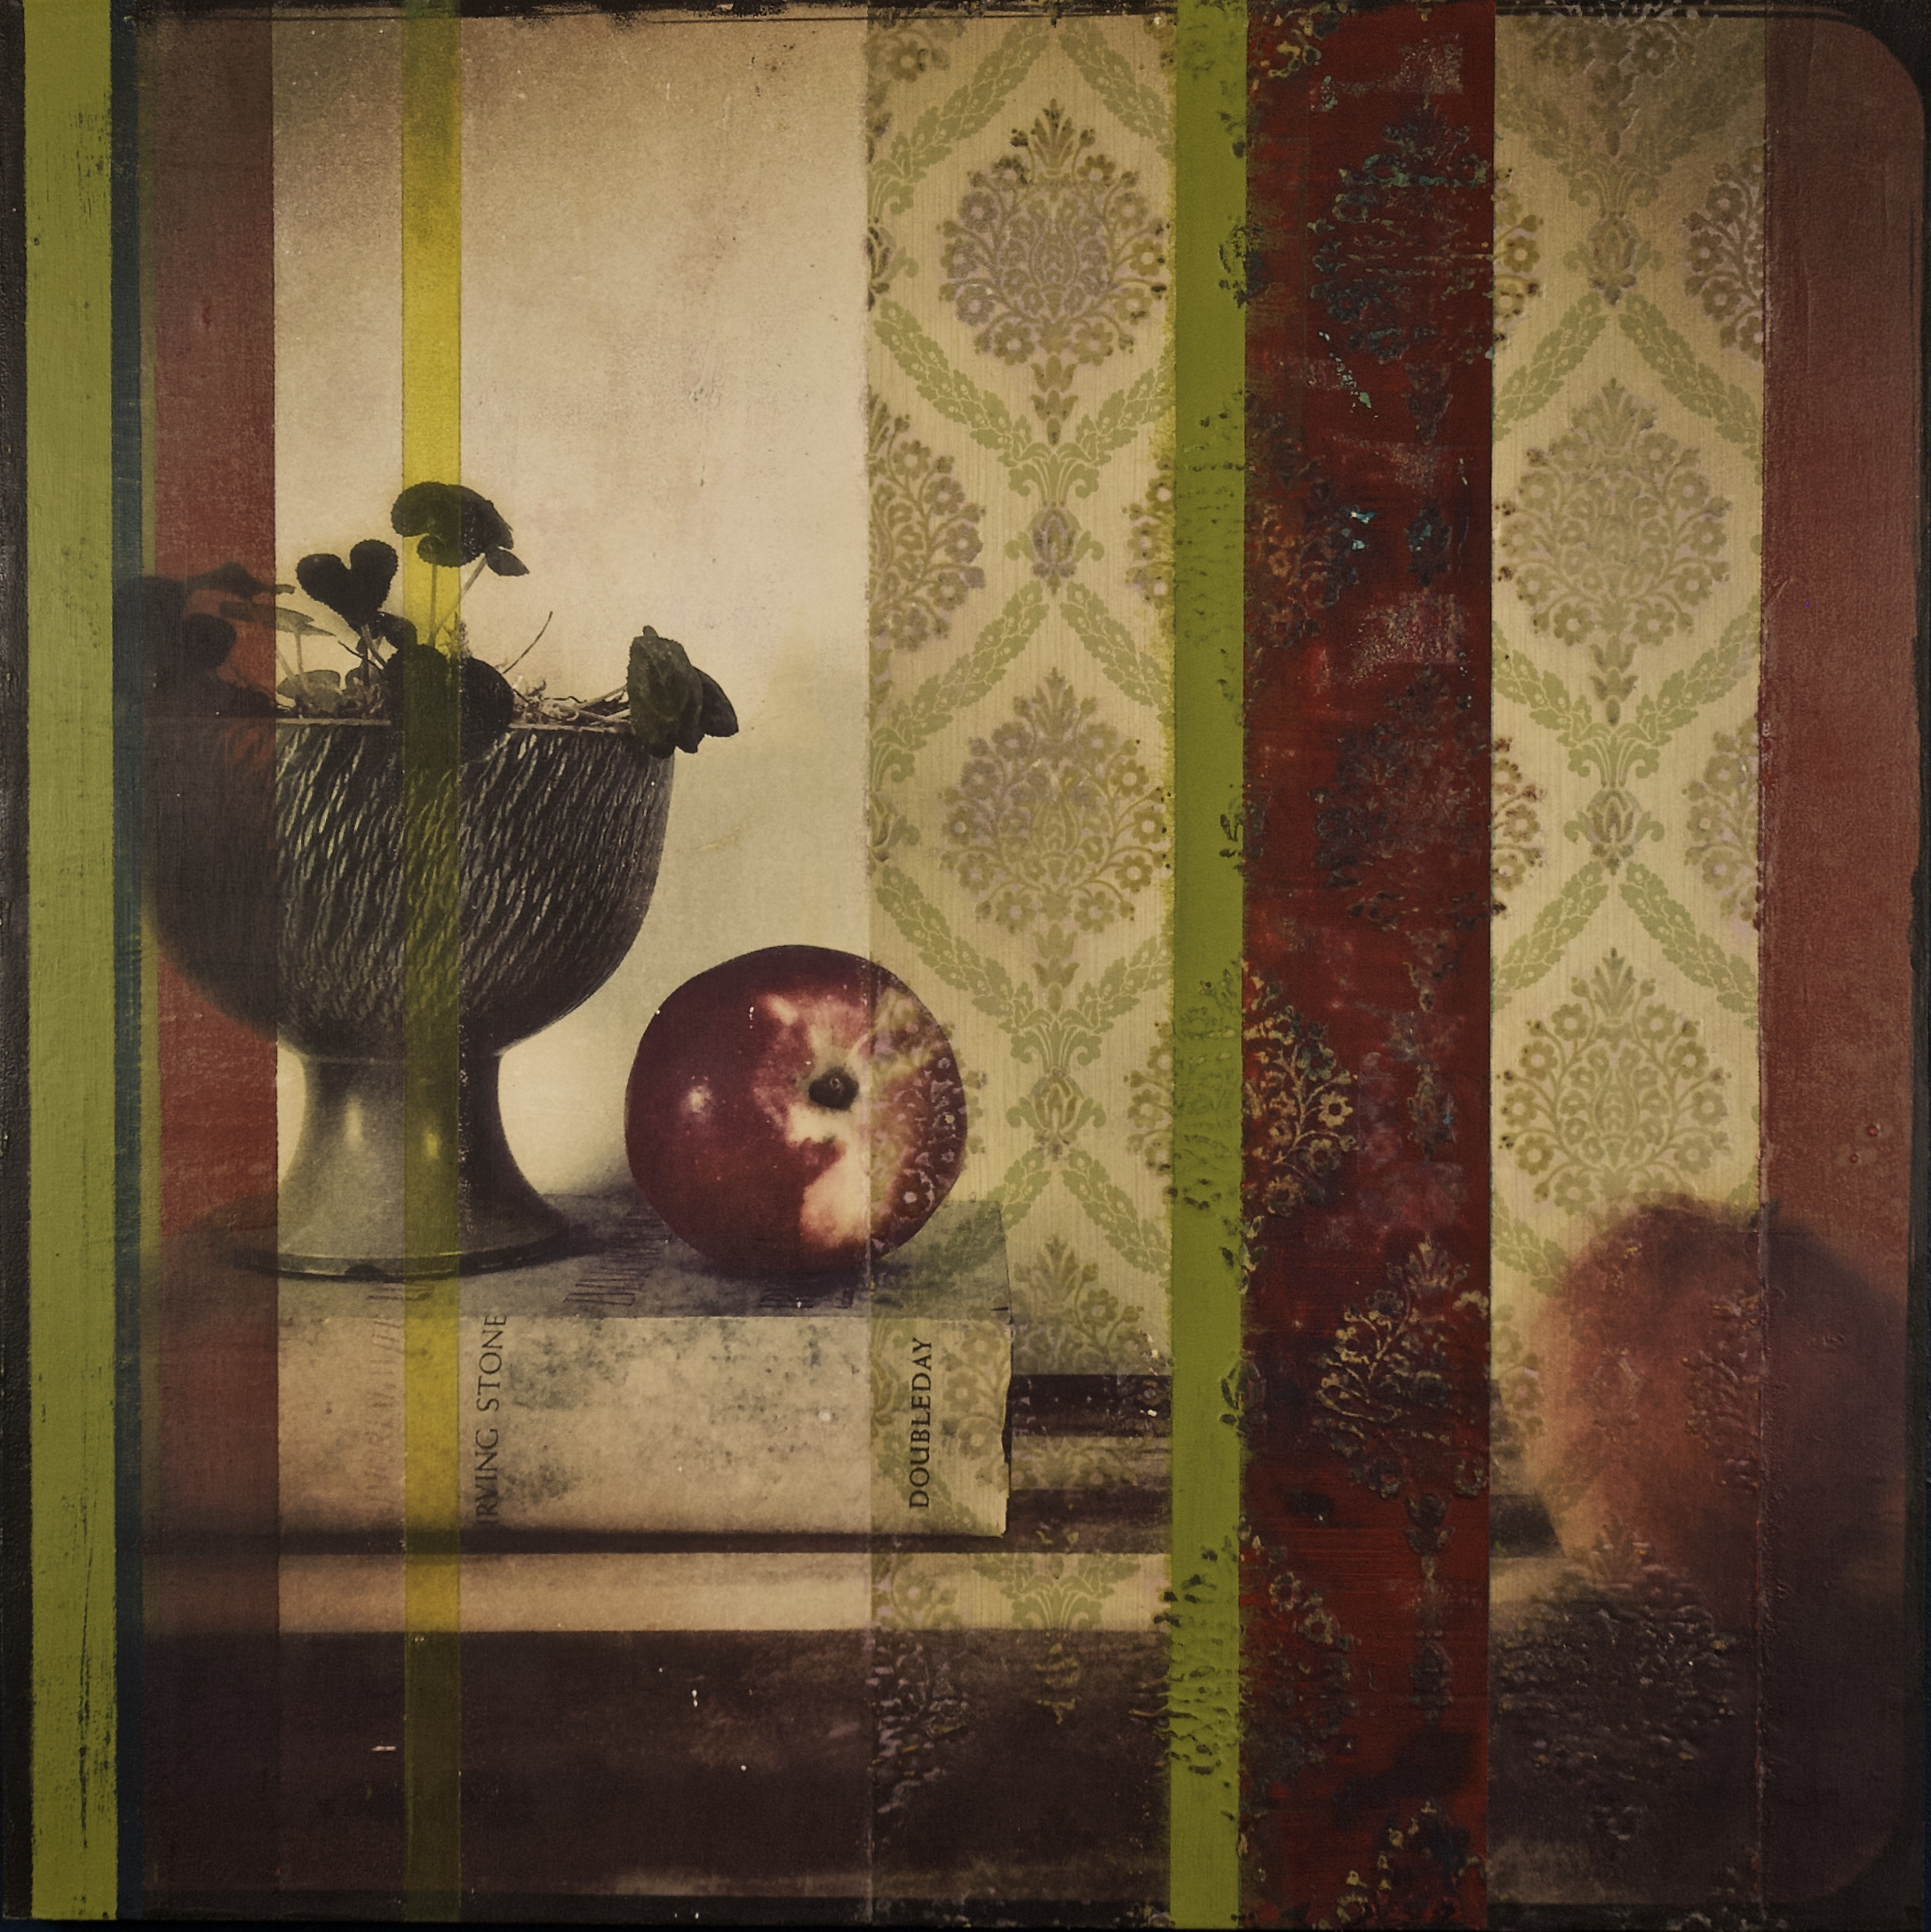 Still Life with Apples and Book